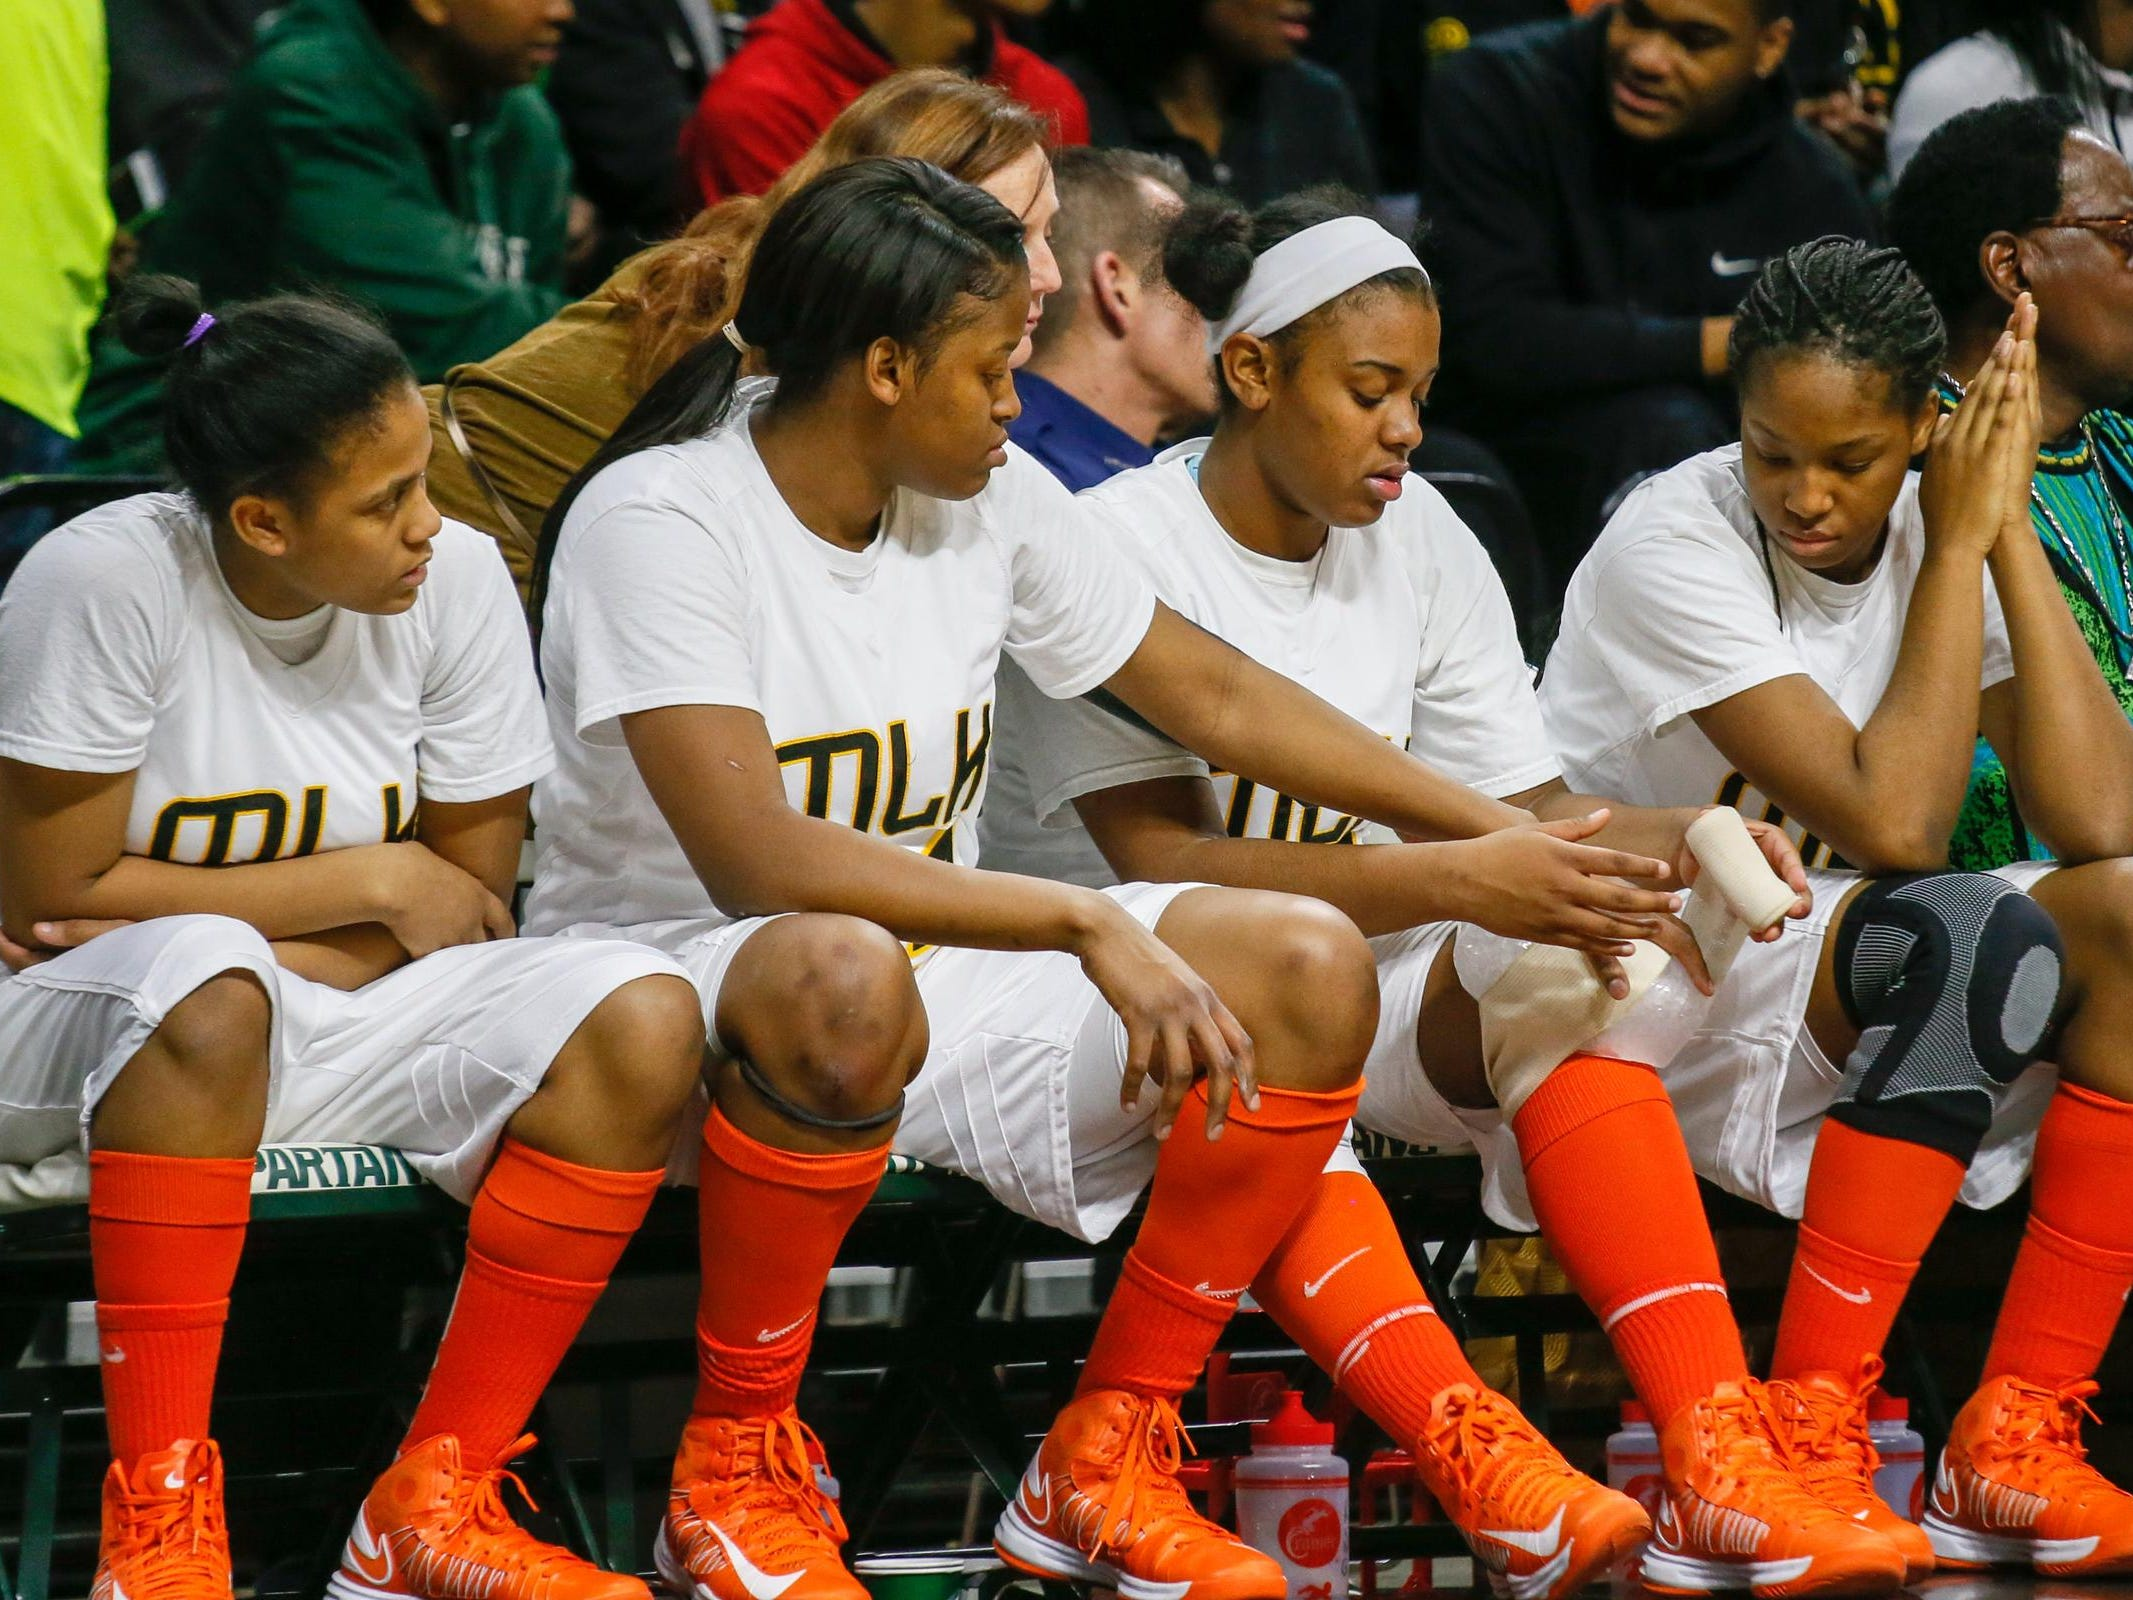 Detroit King's Jordan Lewis ices her knee in the fourth quarter Friday. The team's orange socks and shoes are a throwback to when the school was Detroit Eastern.